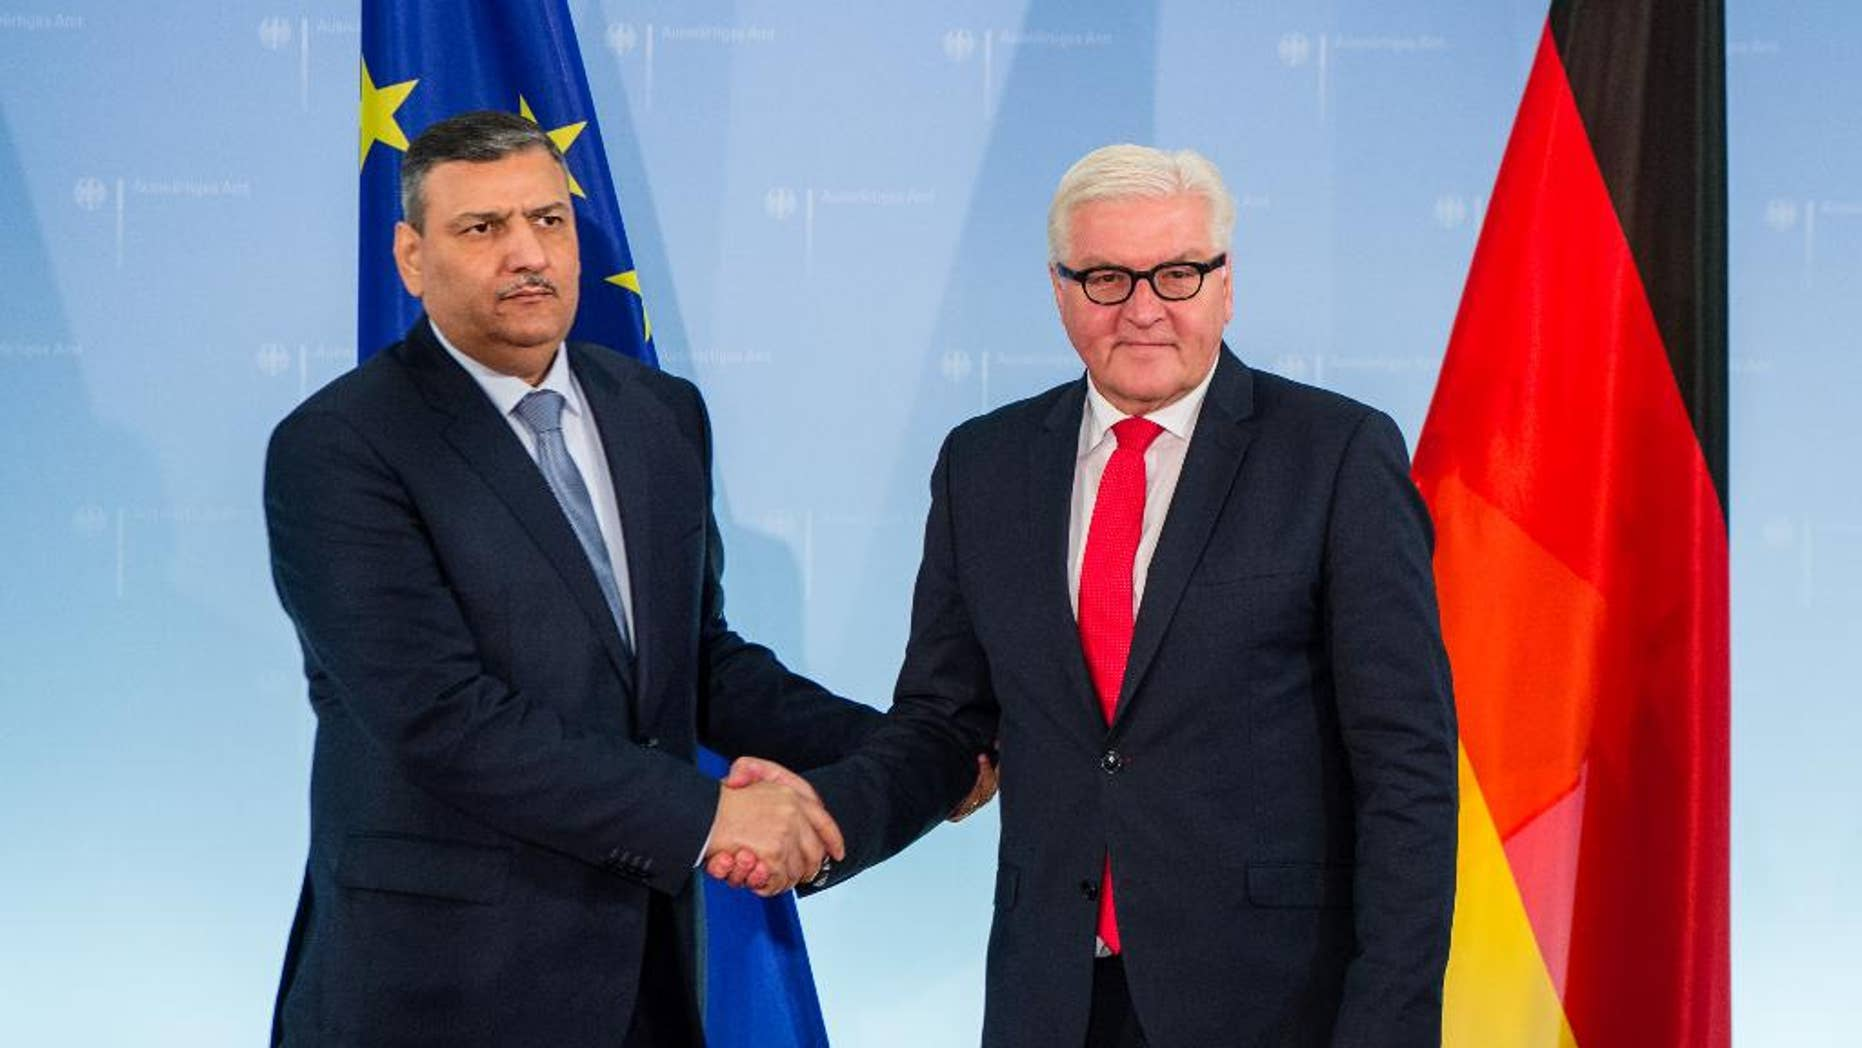 Former Syrian  Prime Minister Dr Riyad Farid Hijab, now coordinator  of the High Negotiations Committee of the Syrian Opposition (HNC) , left, shakes hands with German foreign minister Frank-Walter Steinmeier during their meeting in Berlin, Thursday Nov. 3, 2016.  (Sebastian Gollnow/dpa via AP)